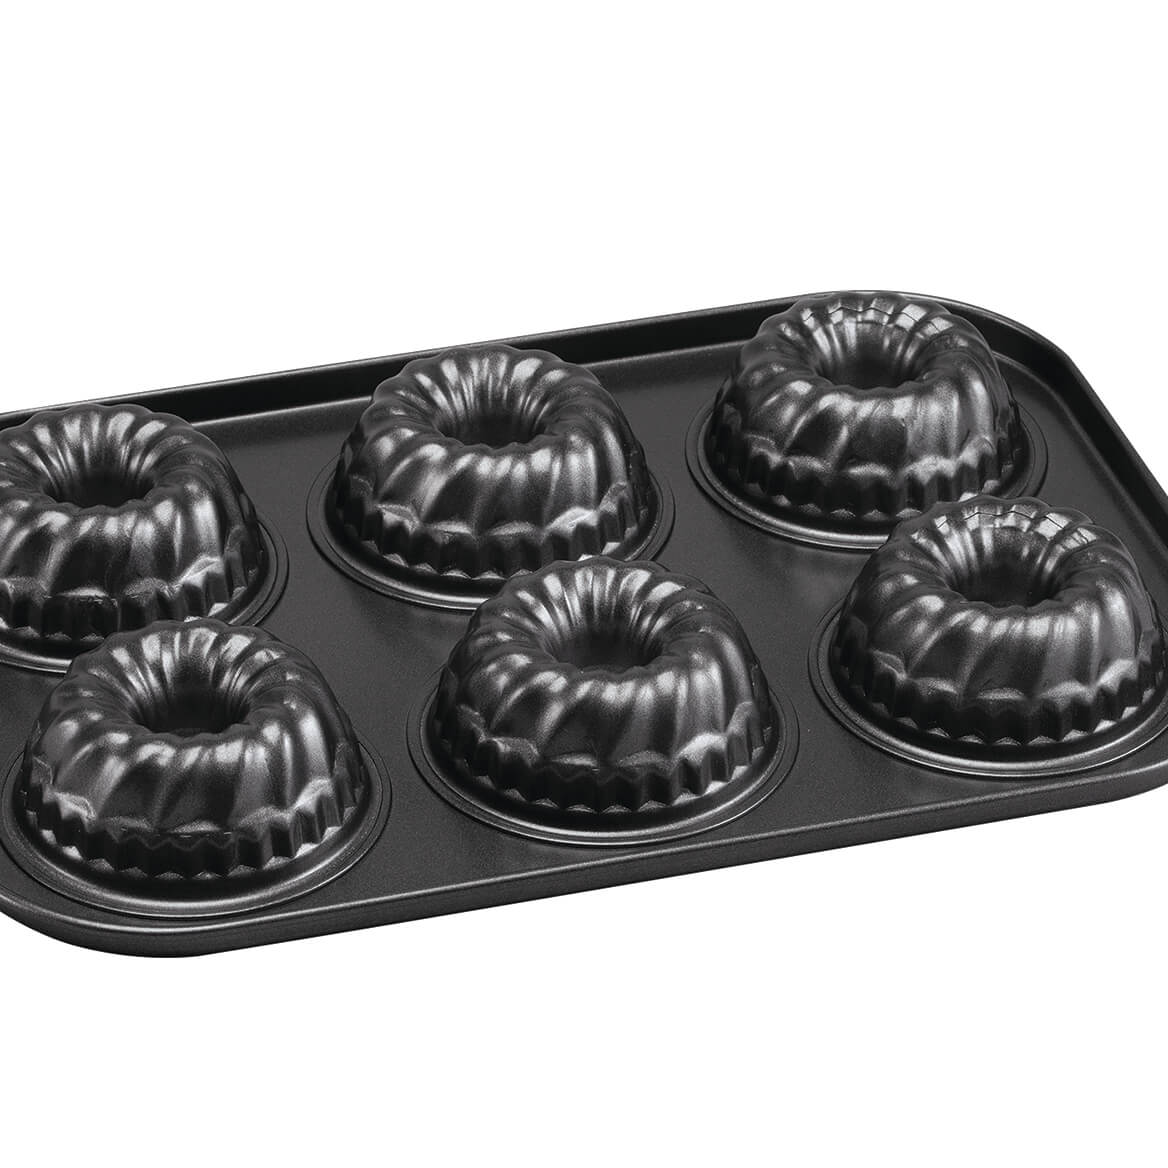 Mini Cake Nonstick Pans by Chef's Pride – Set of 2-369402